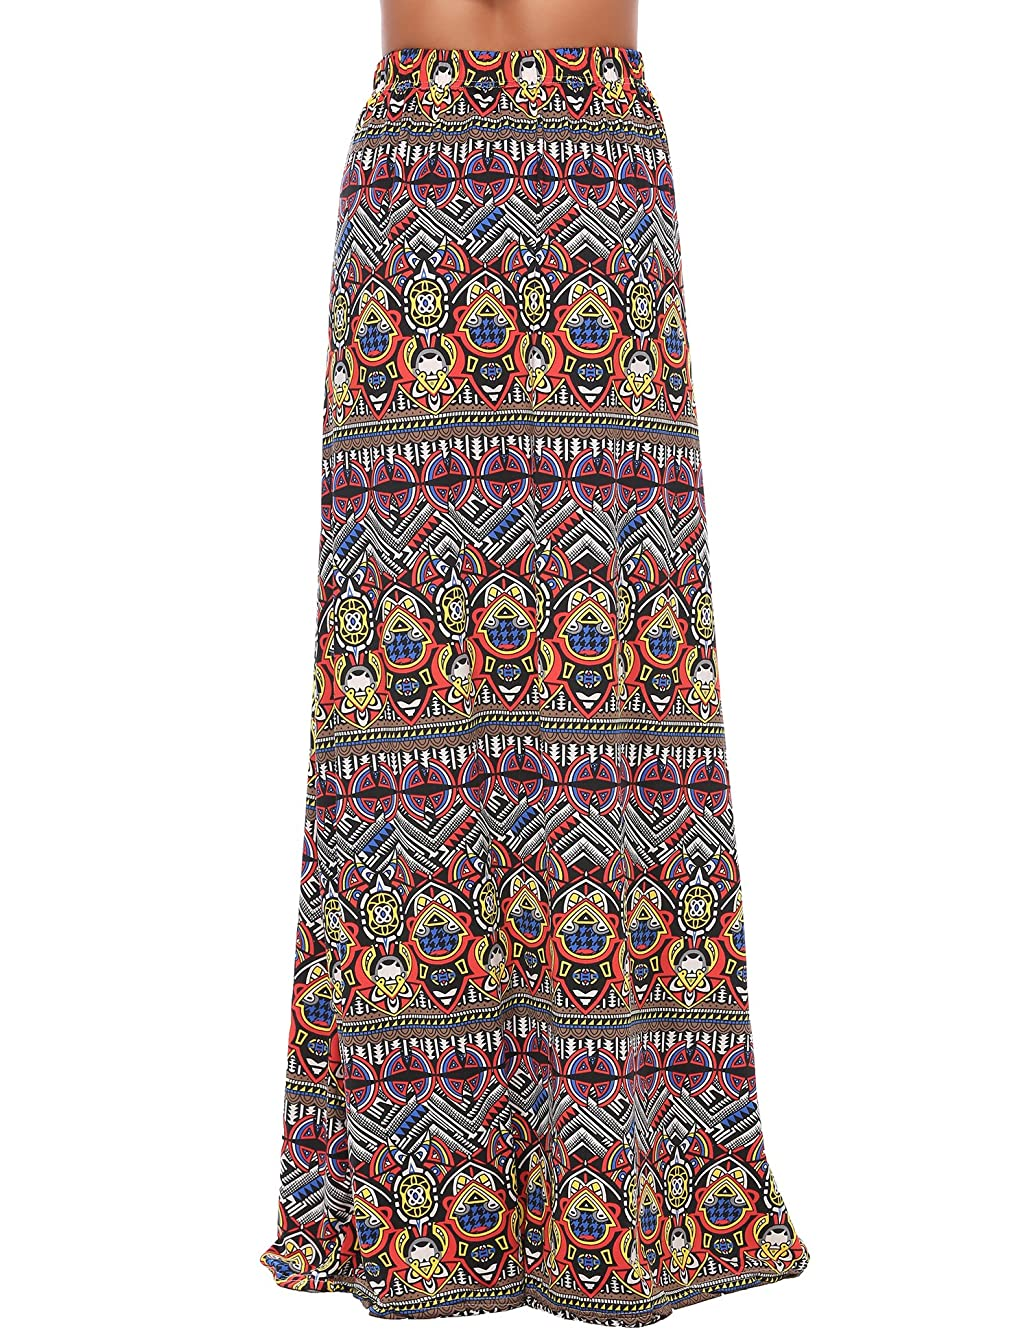 Zeagoo Maxi Printed Skirts for Women A Line Long Elastic Casual Skirt